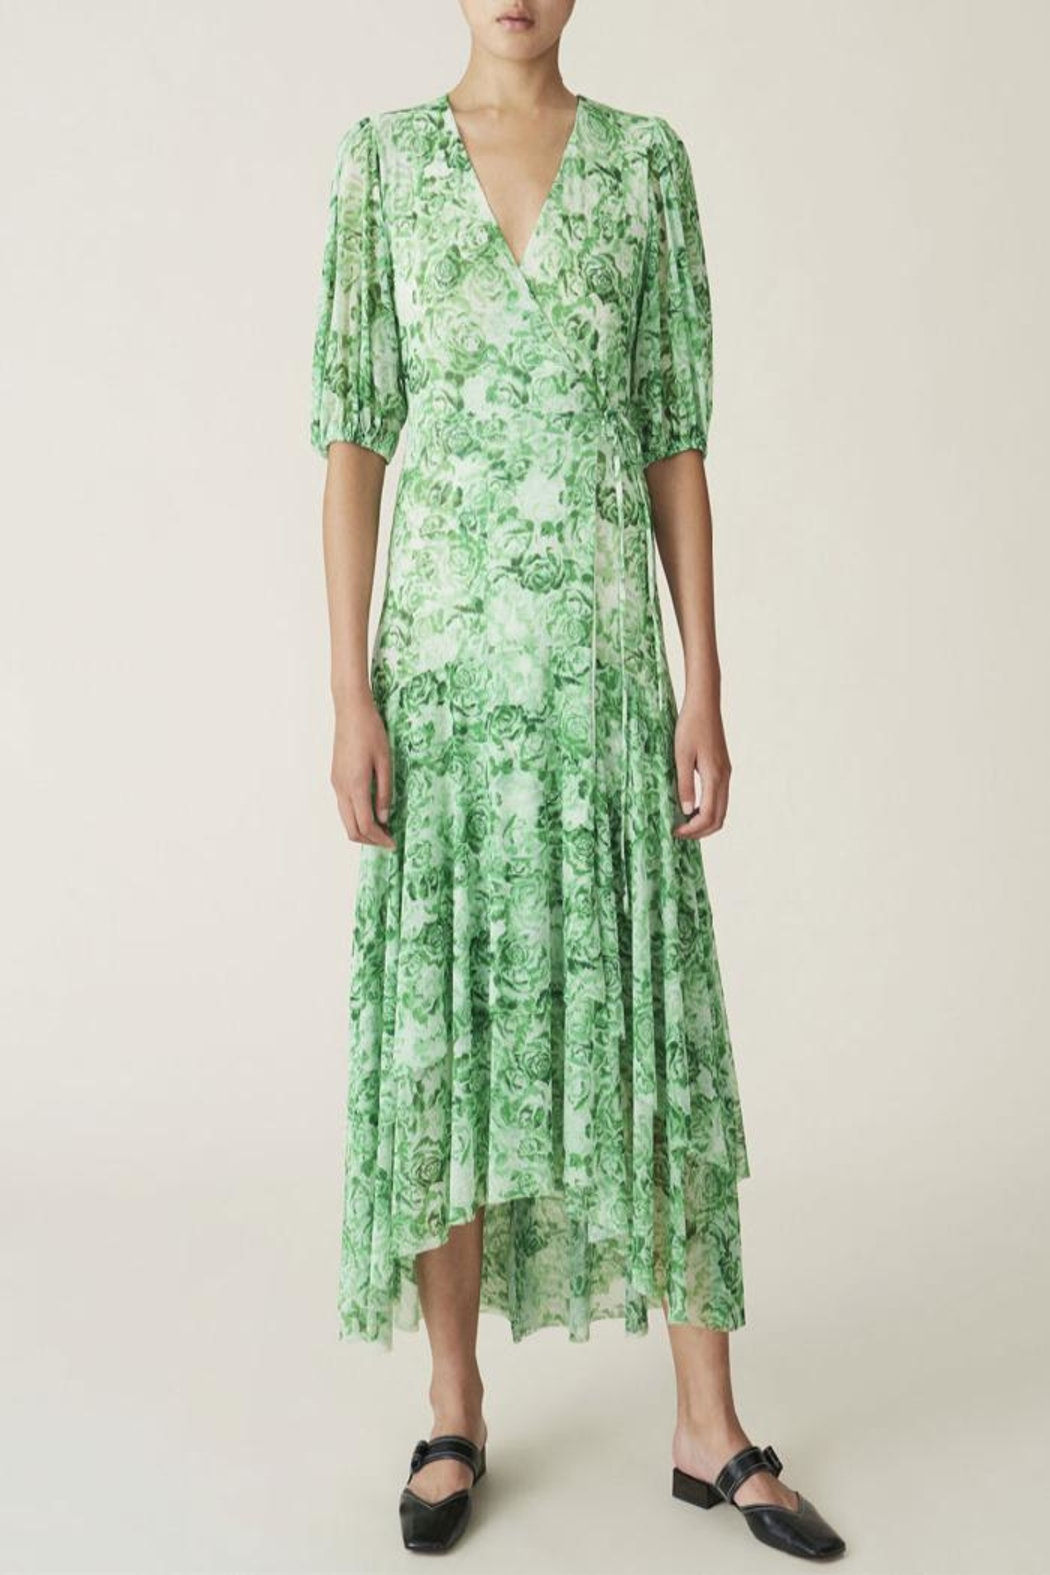 Ganni Wrap Dress Island Green - Main Image